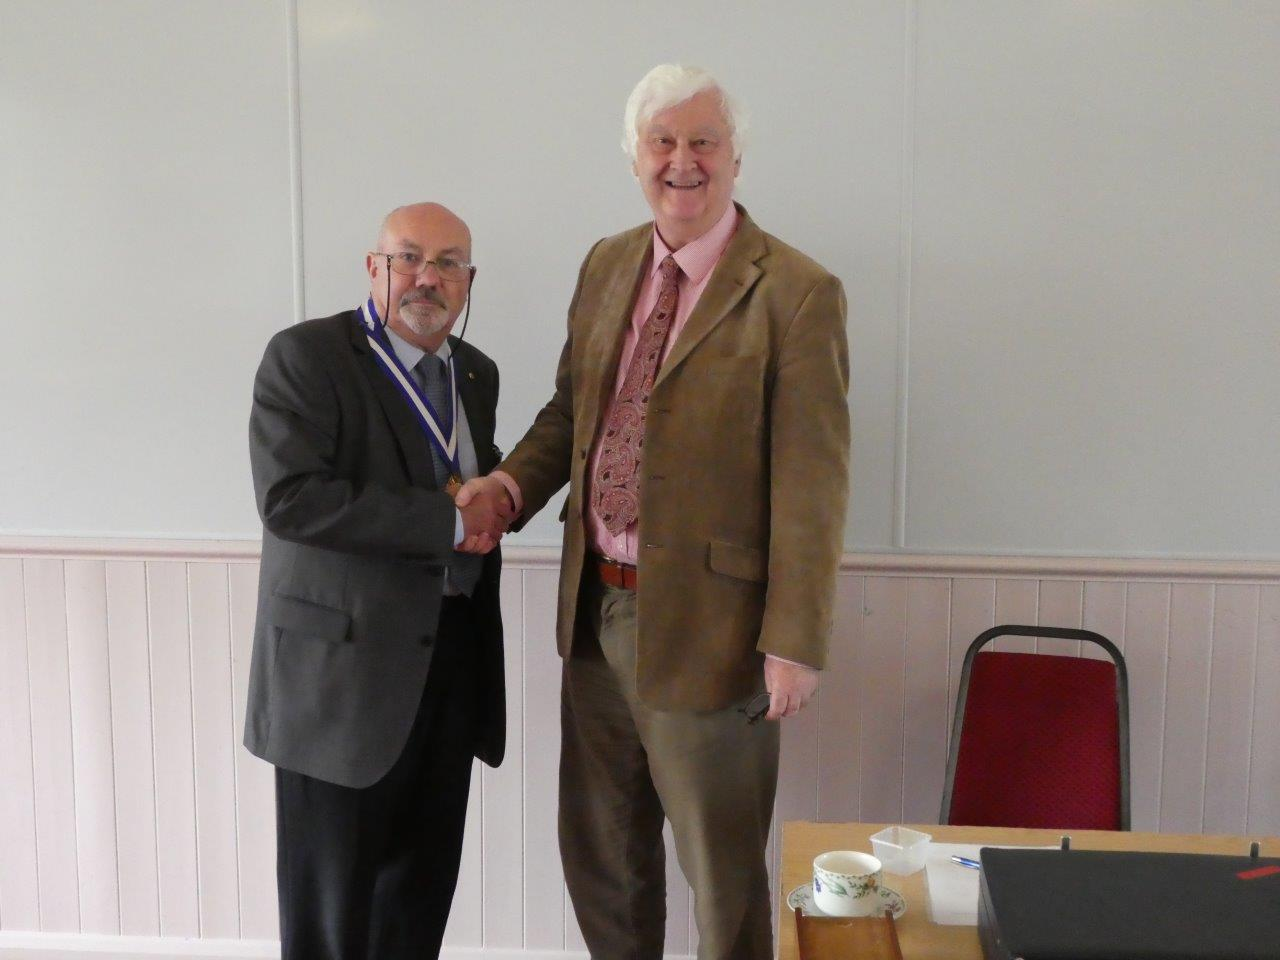 Neil Moore hands over the Chairmanship to Derek Taylor